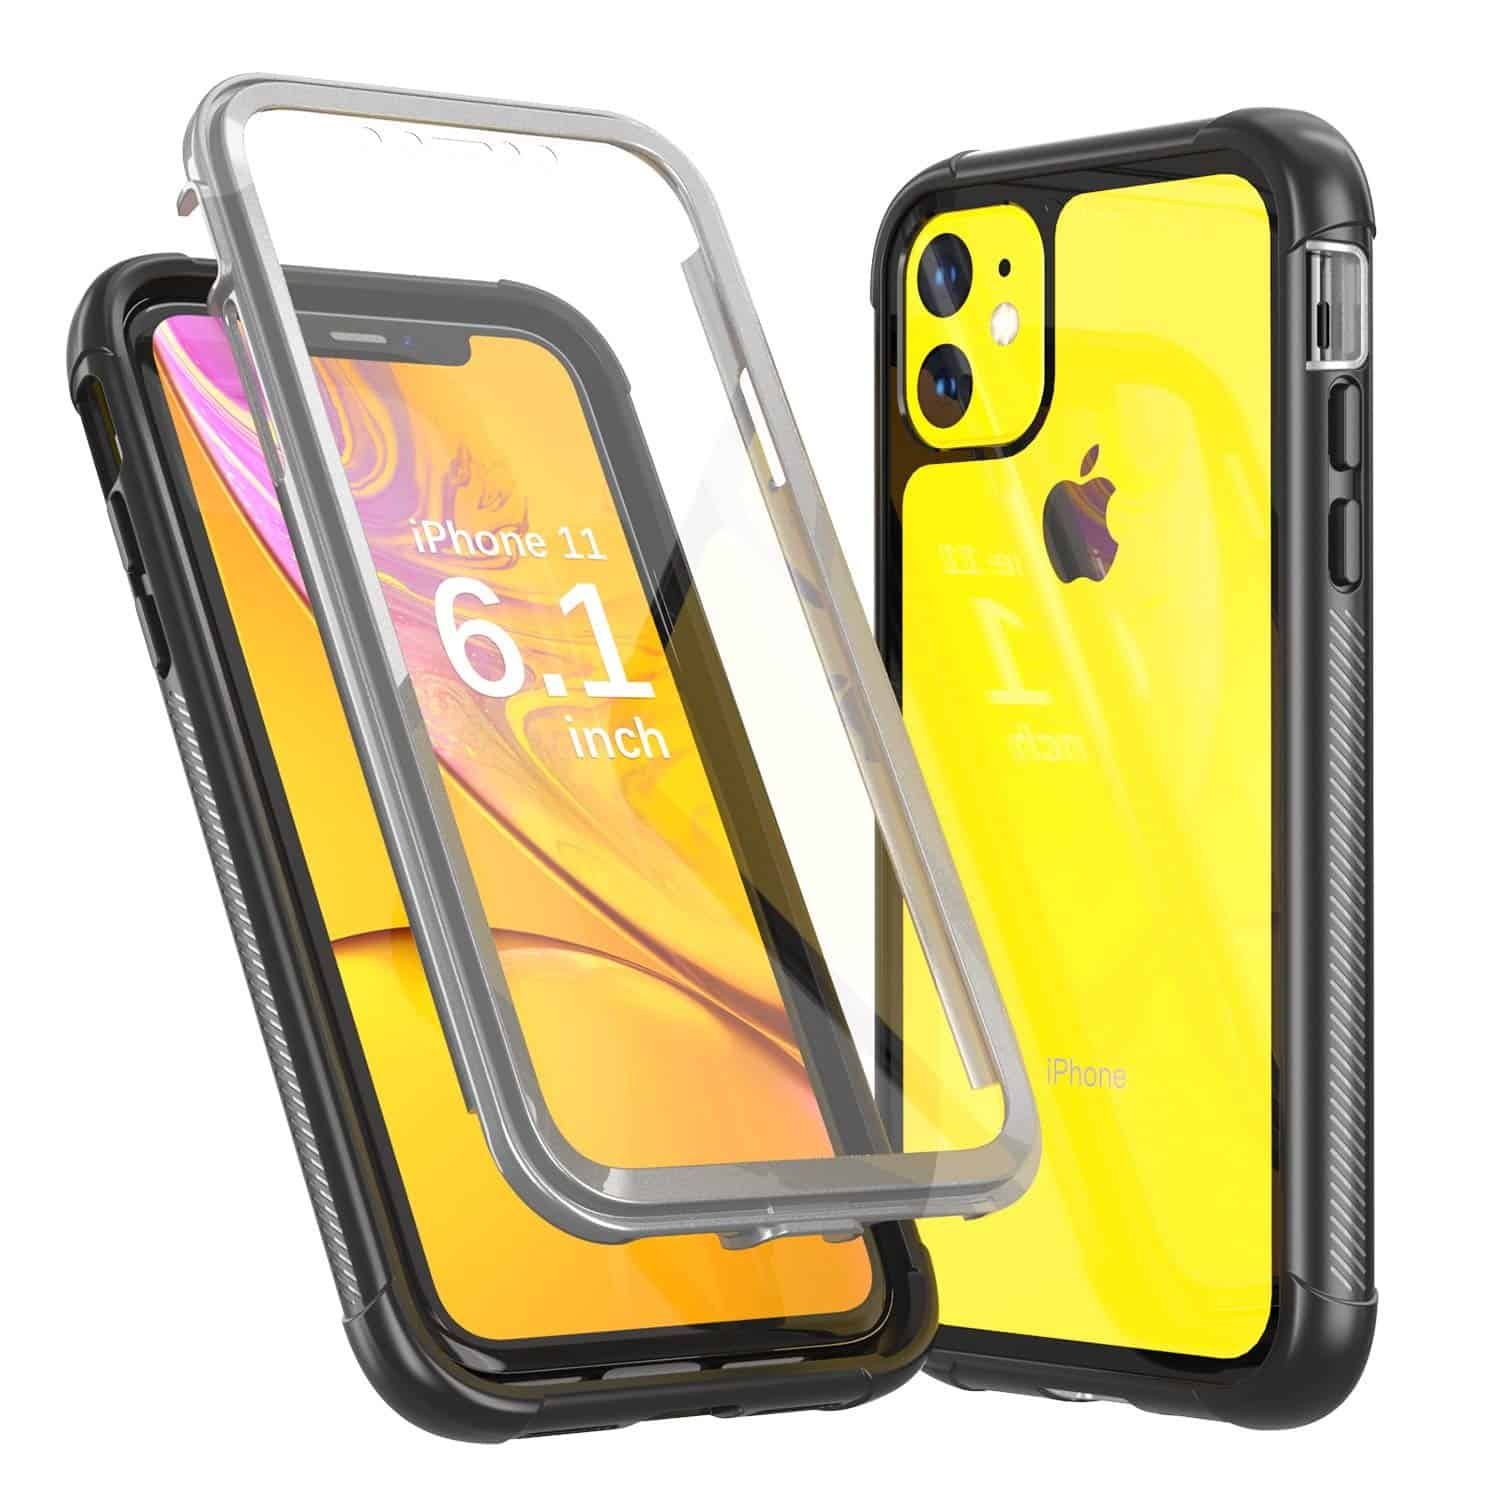 Best iPhone cases for new iPhone 11, 11 Pro, 11 Pro Max